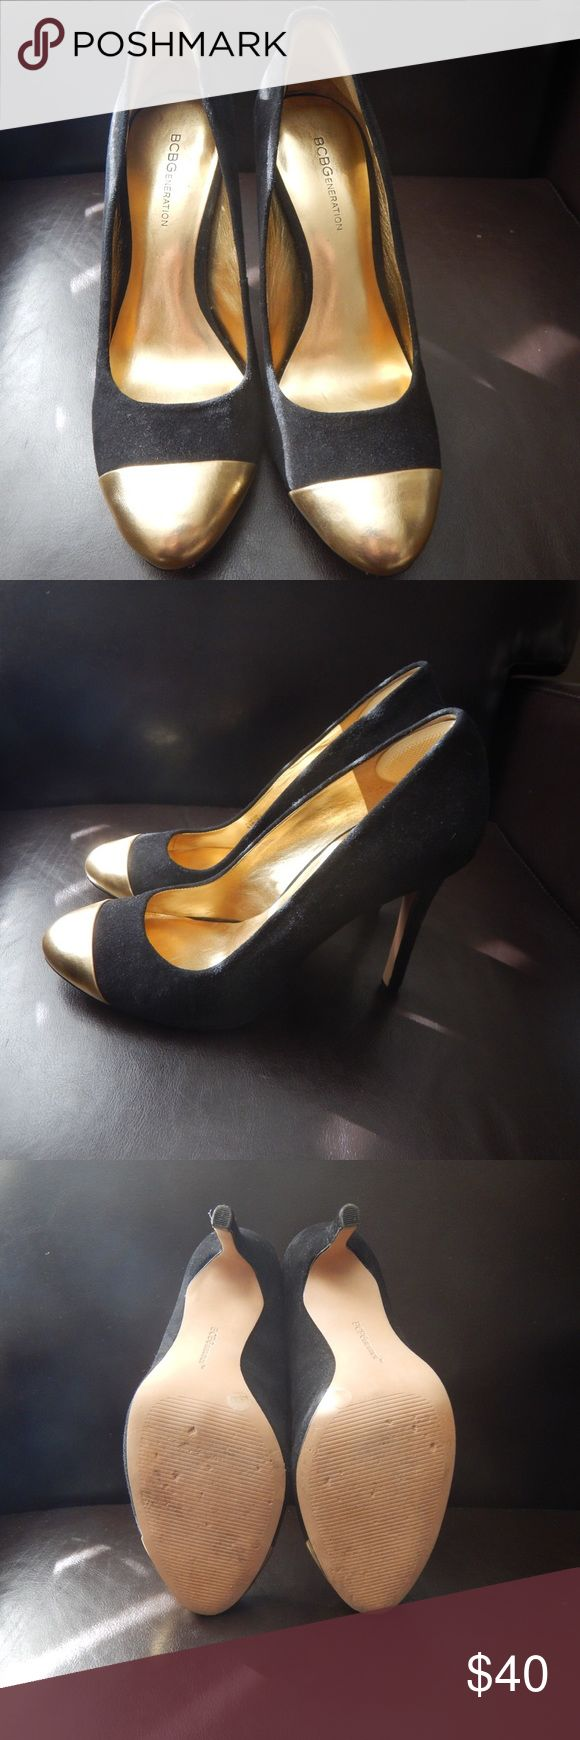 BCBGeneration Gold Capped Pumps Gold capped, round toe pumps. Worn twice. They also have a foam heel grip for additional comfort. BCBGeneration Shoes Heels